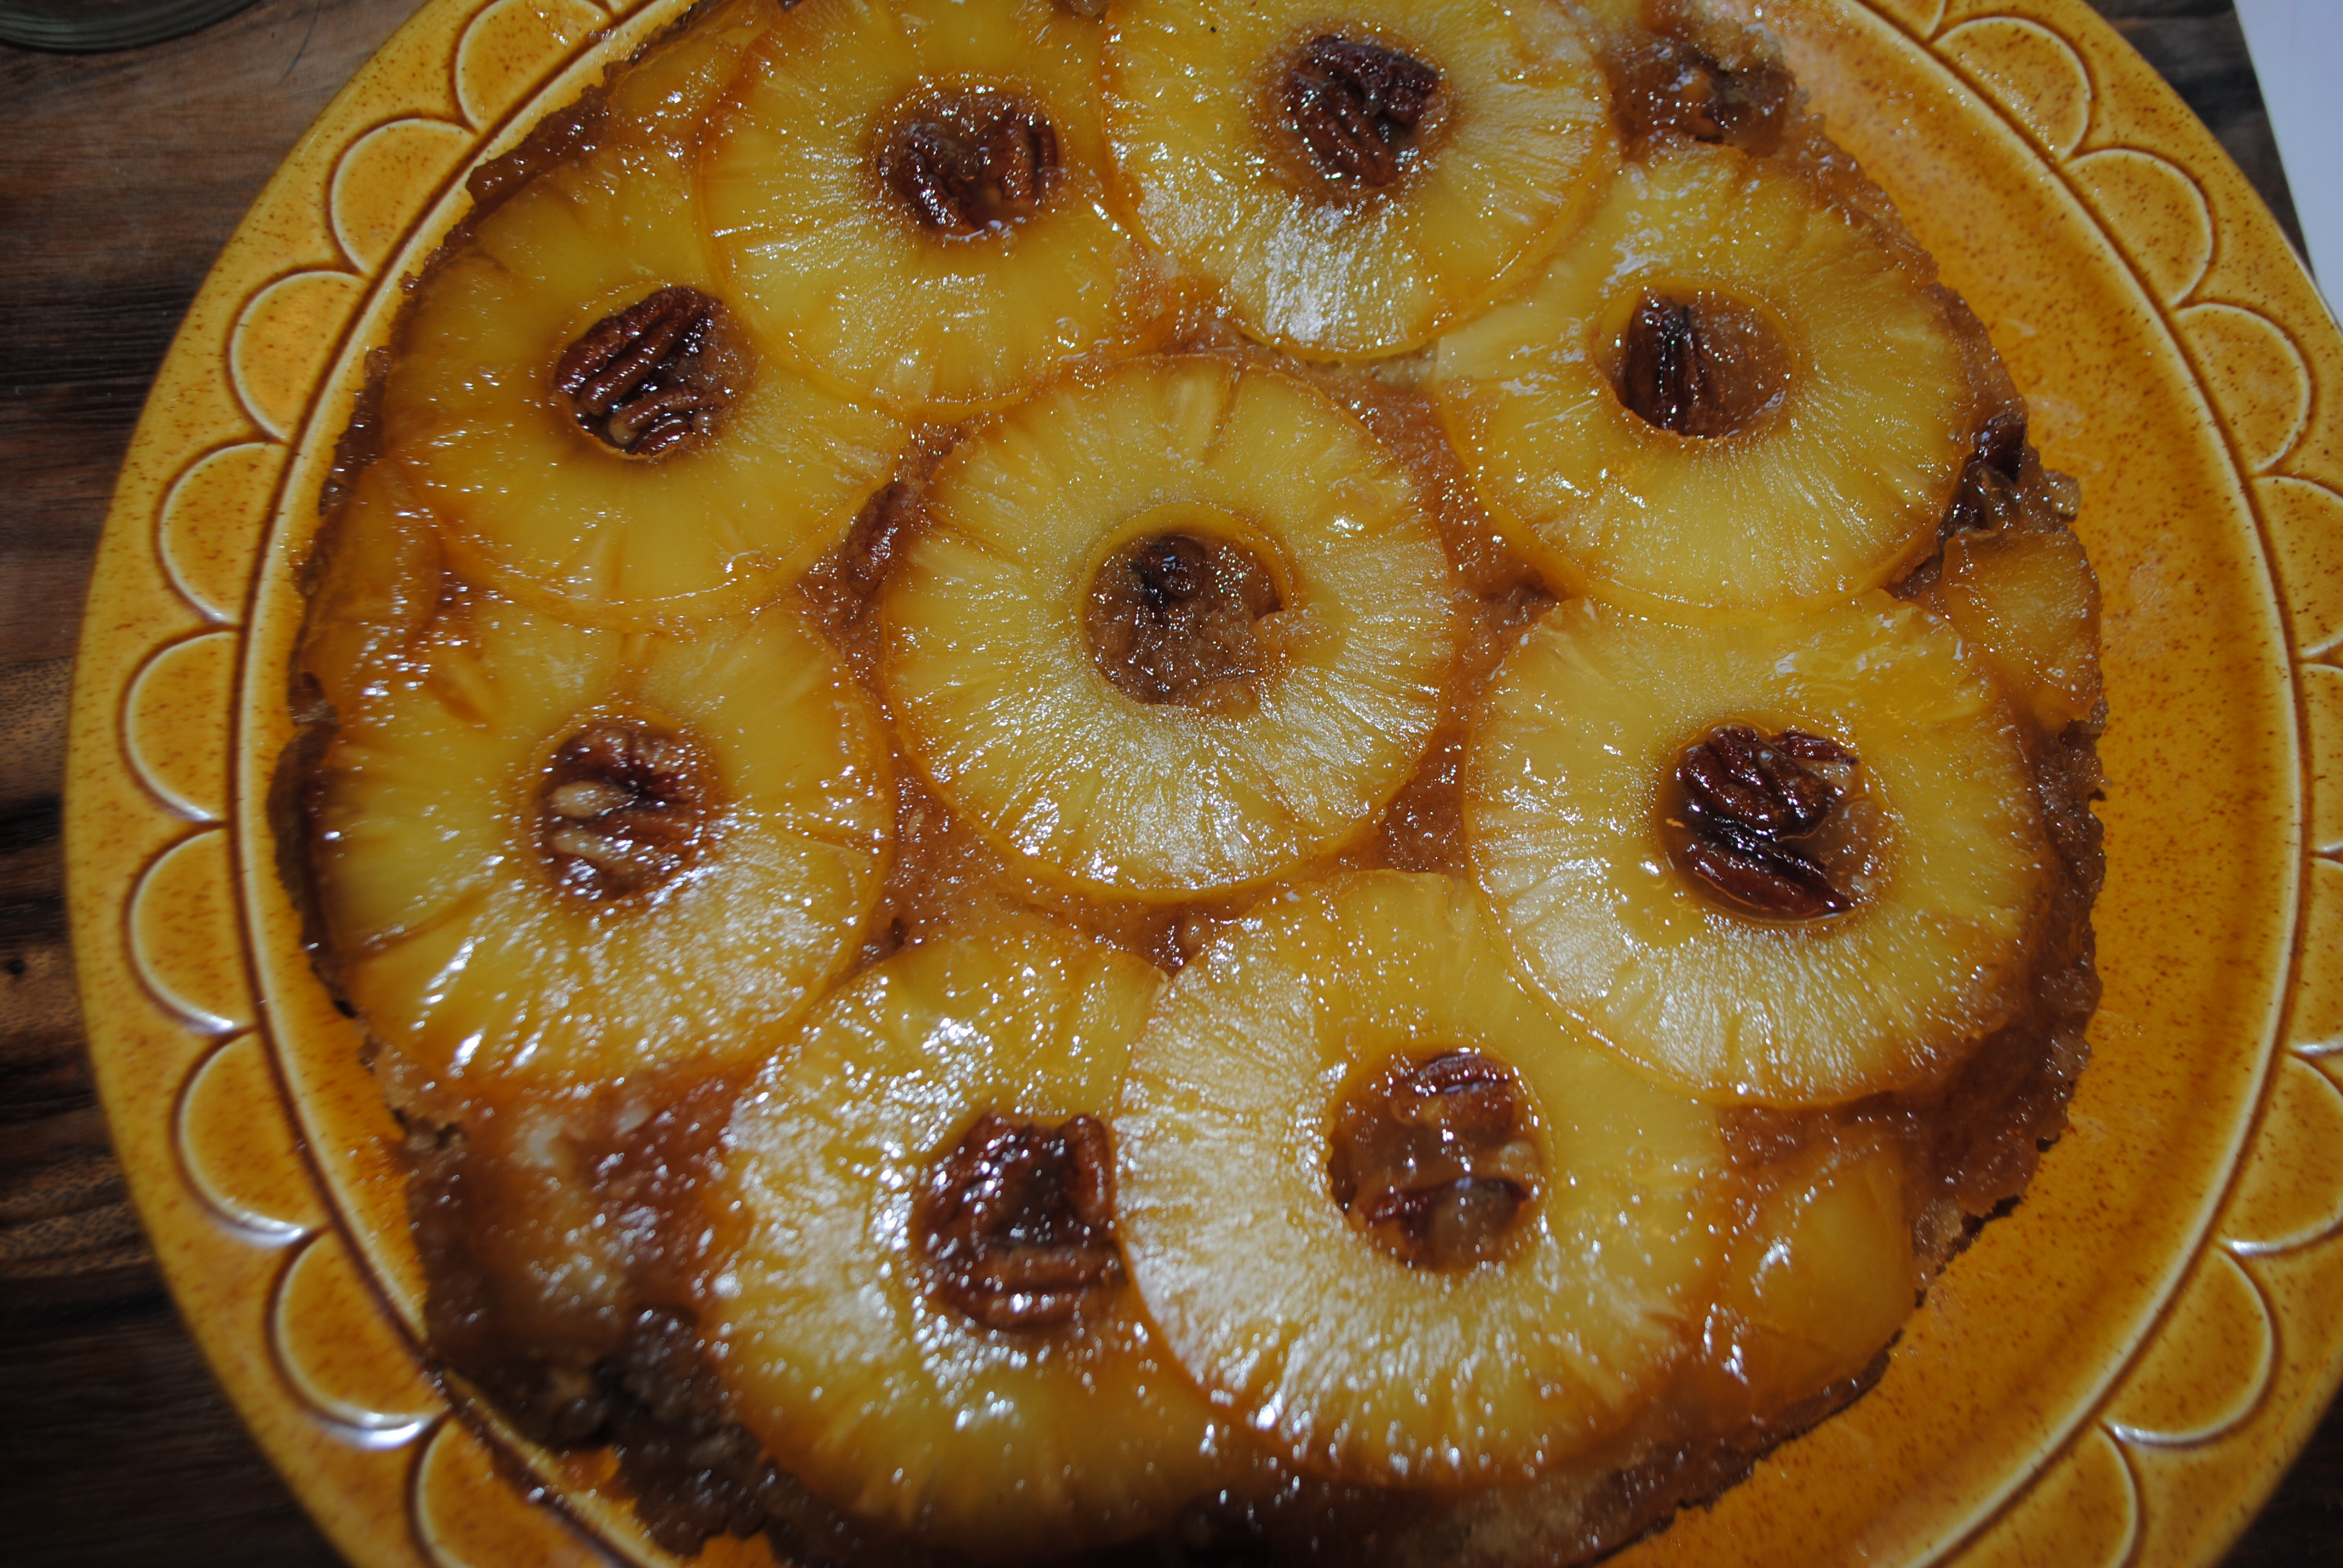 Old Fashioned Pineapple Upside-Down Cake Recipe 16